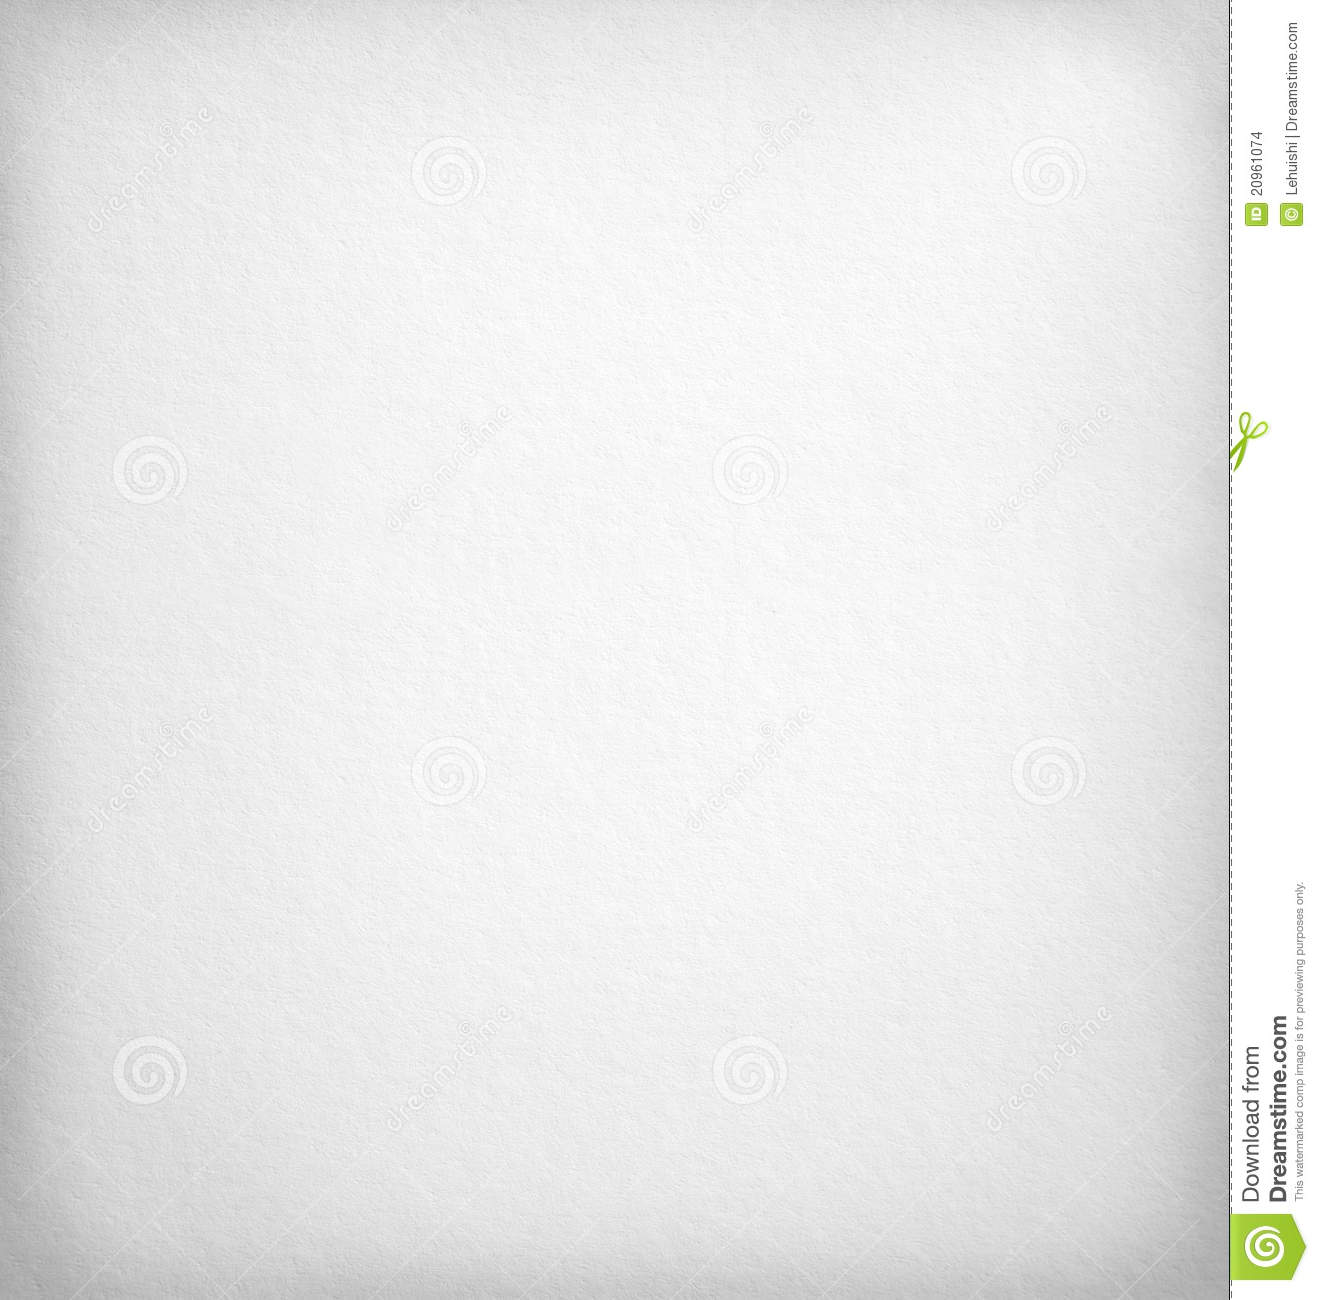 Close Up on White Paper stock photo. Image of blank, close ...